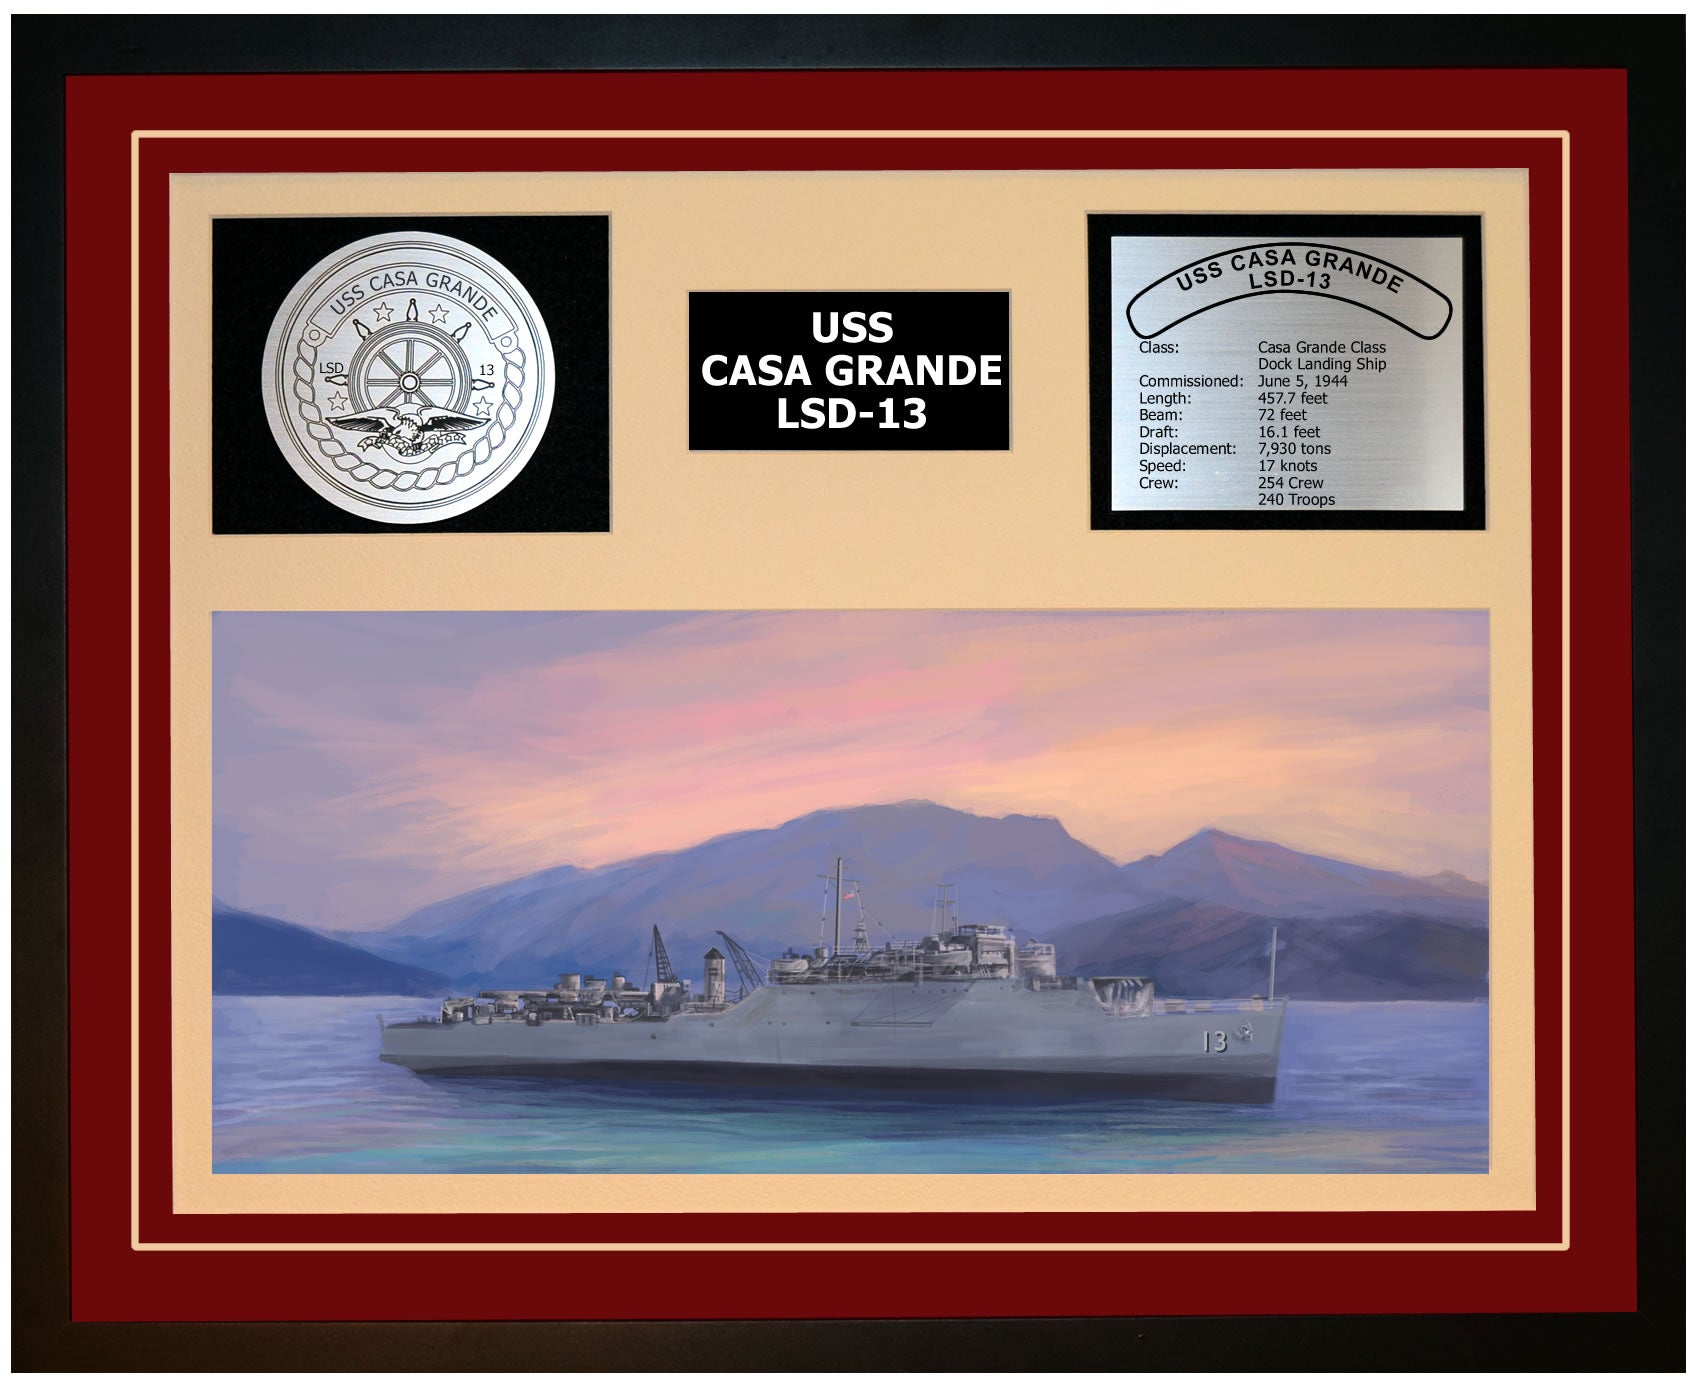 USS CASA GRANDE LSD-13 Framed Navy Ship Display Burgundy